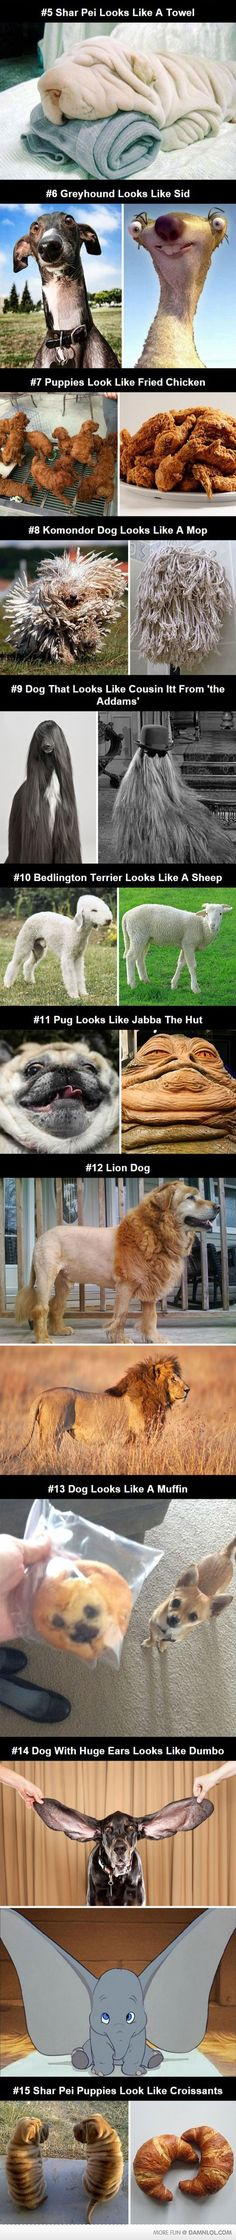 Dogs That Look Like Other Things Funny Animal Humor, Funny Unicorn Quotes, Twin Quotes Funny, Funny Puppy Memes, Funny Puppies, Dog Funnies, Pet Humor, Cute Memes, Cute Dogs And Puppies